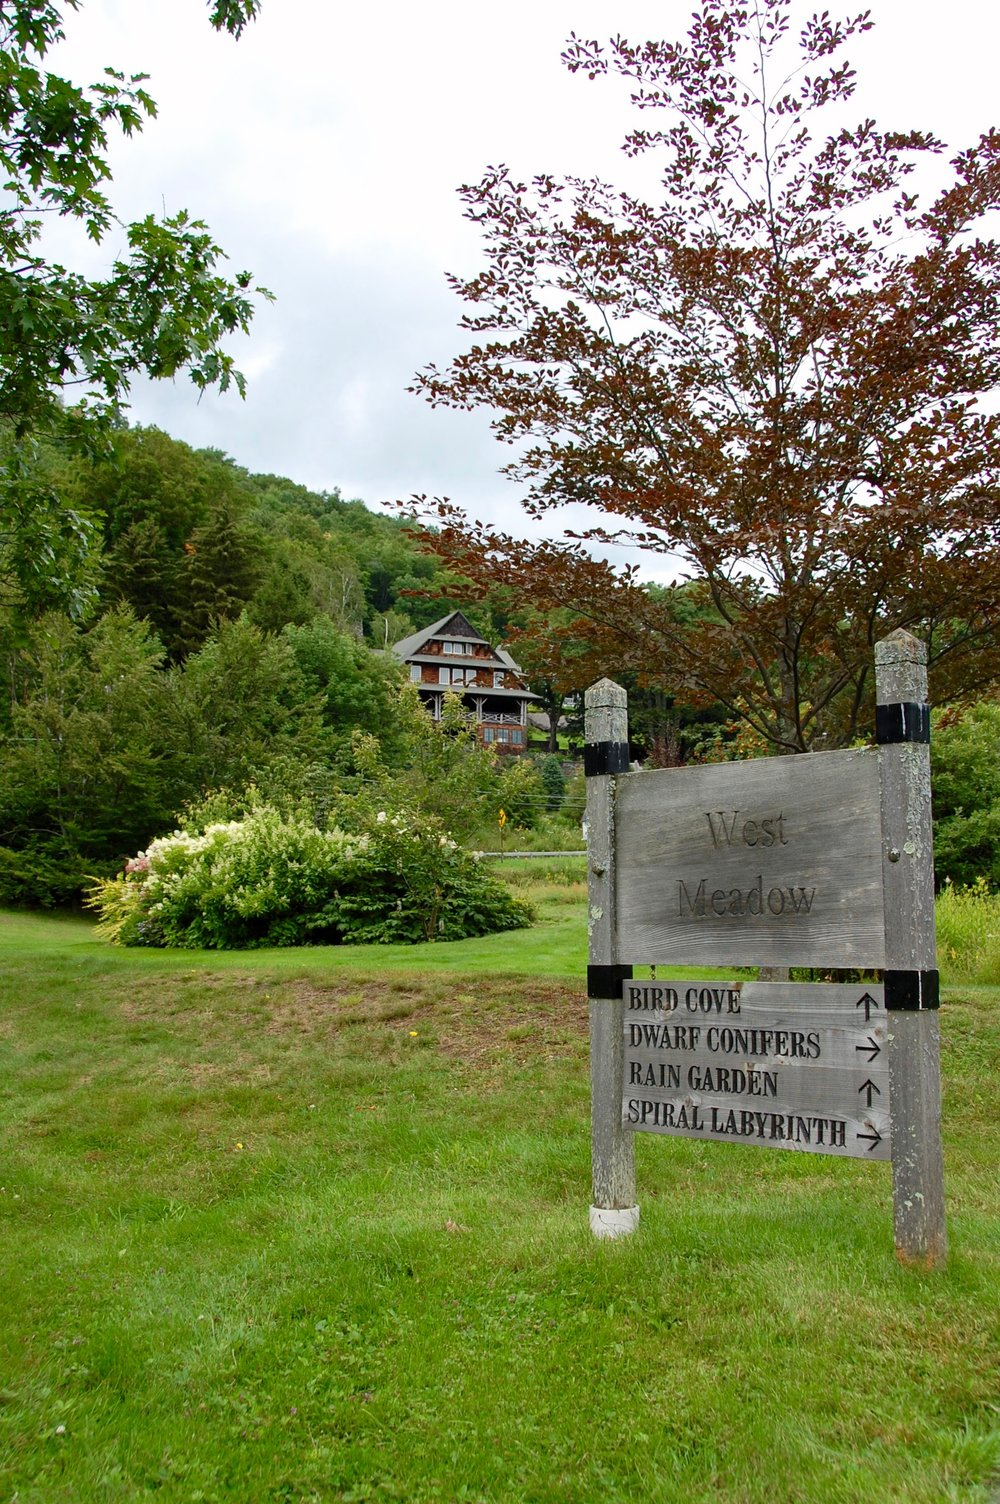 mountaintop arboretum sign